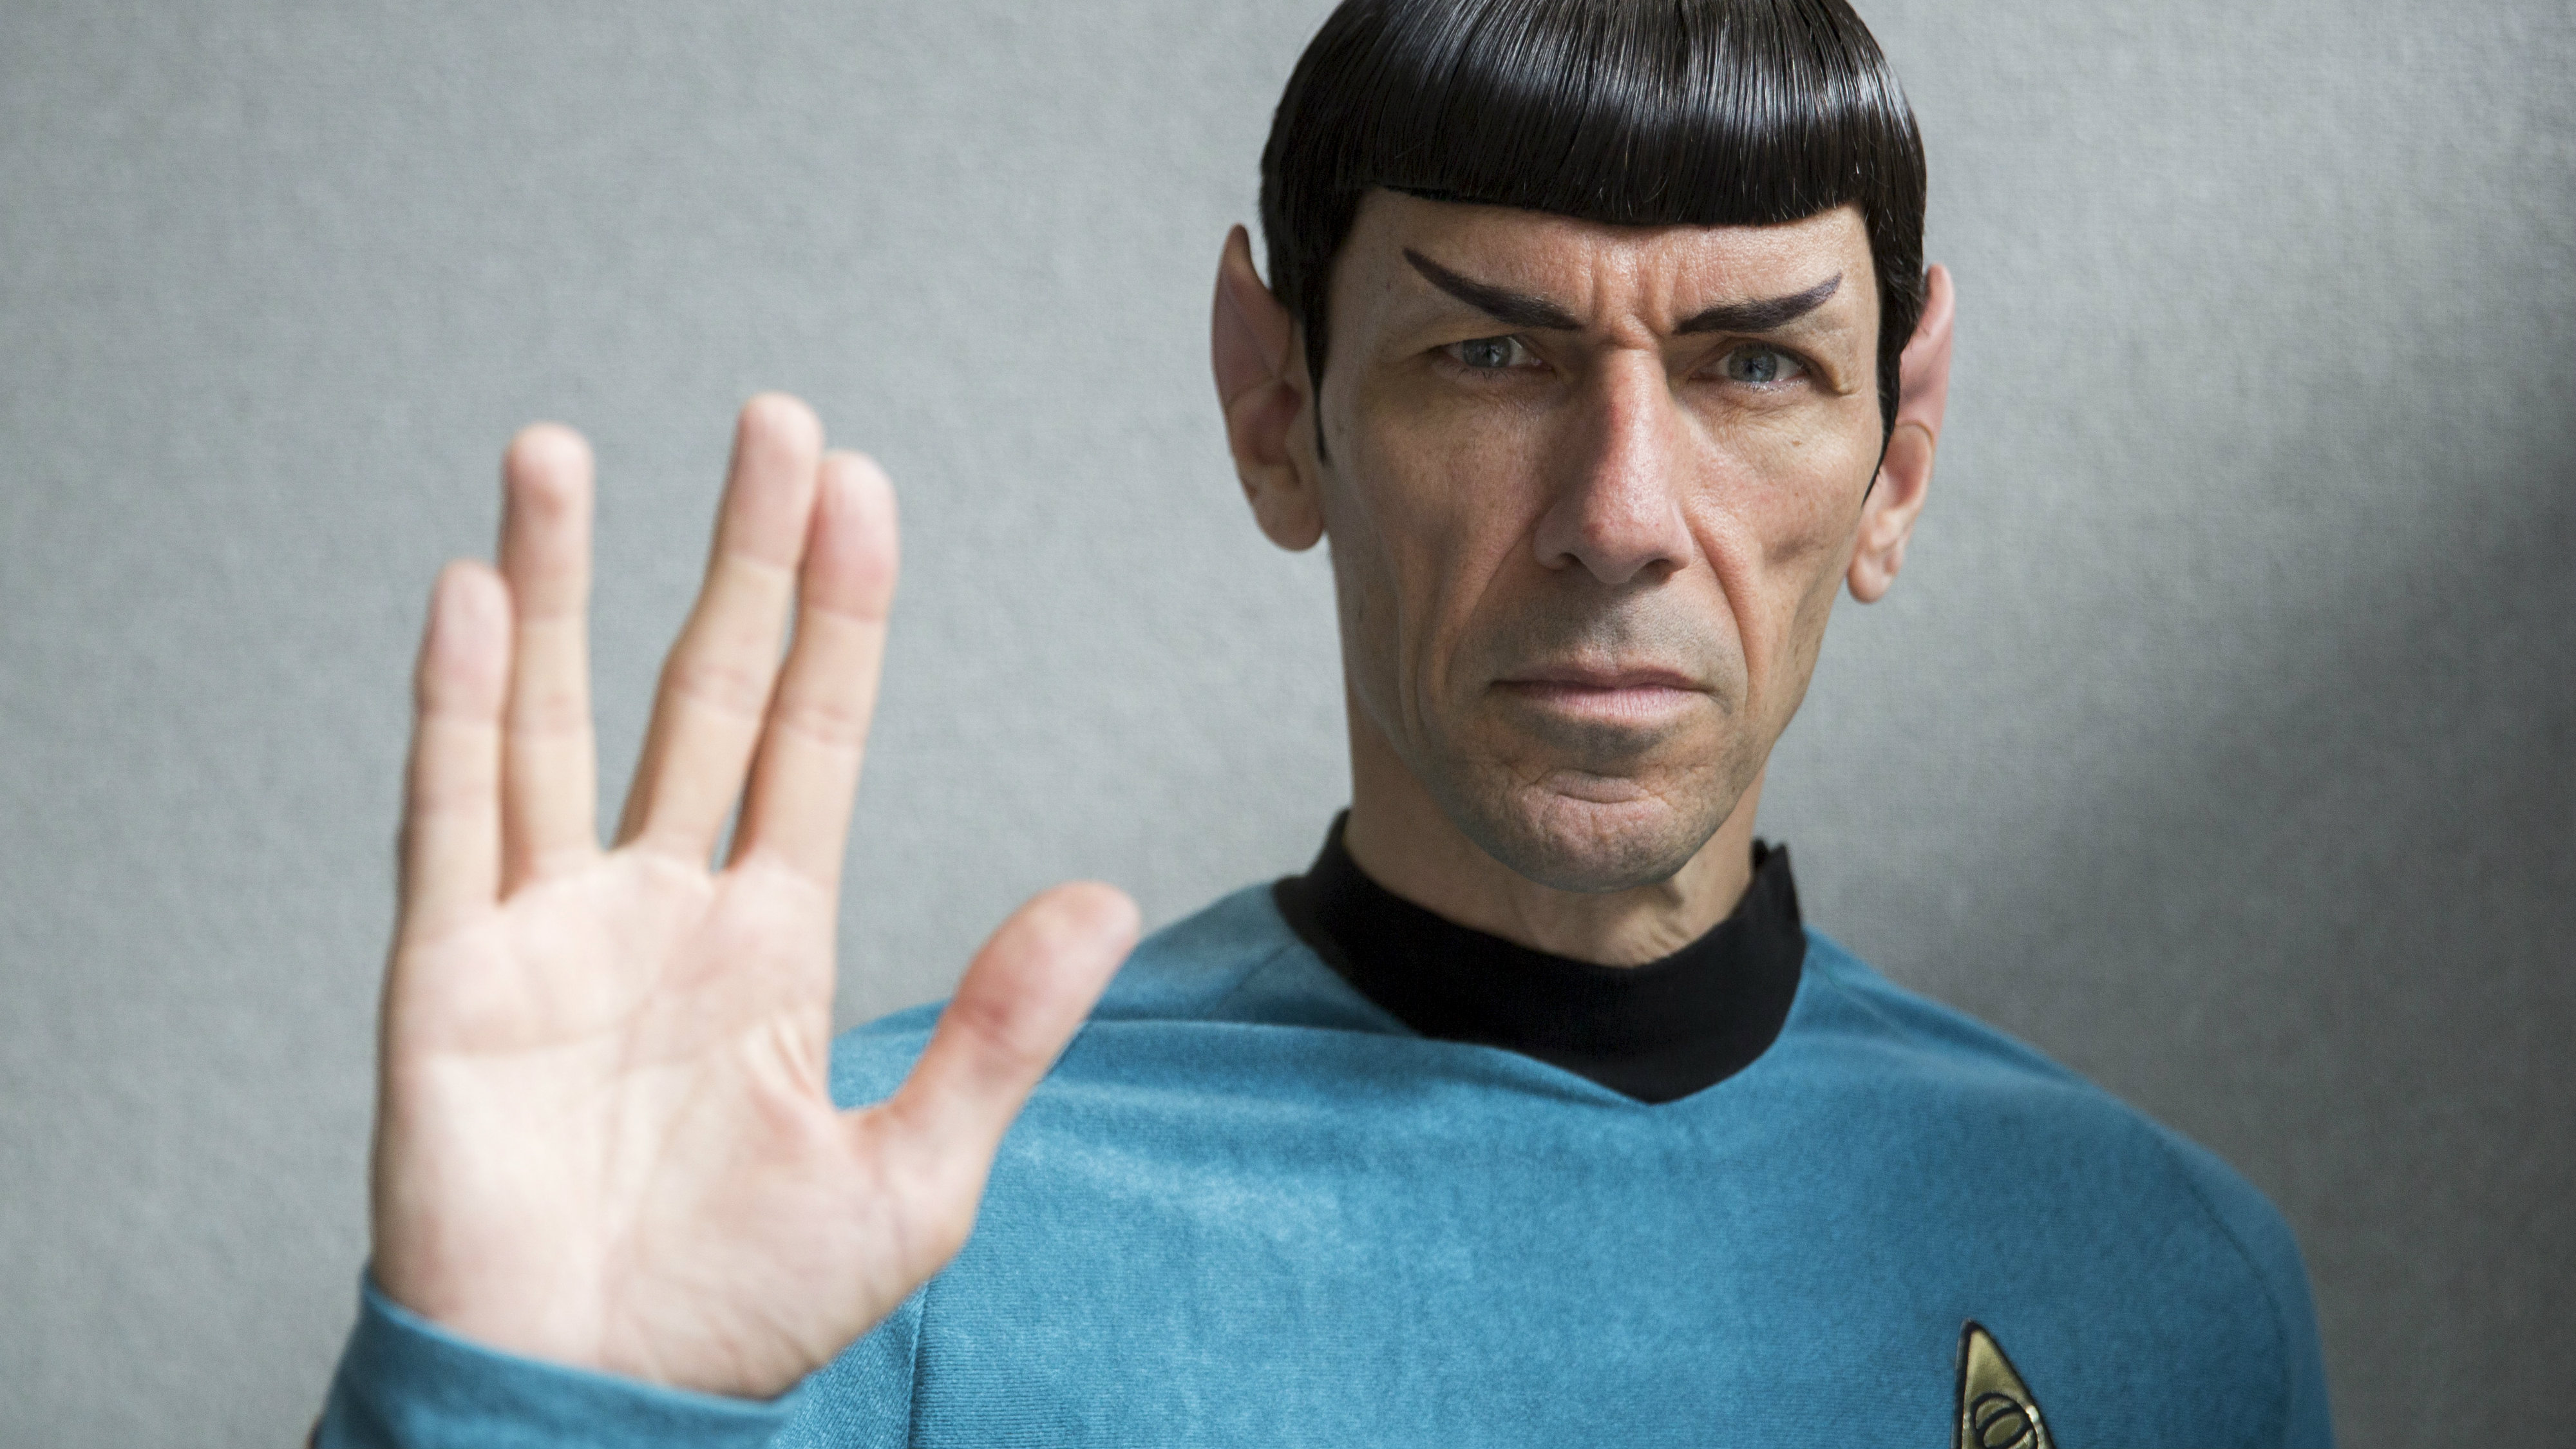 """An impersonator poses in costume as the character Mr Spock from the science fiction series """"Star Trek"""" at the London Film and Comic-Con in London, Britain July 17, 2015."""